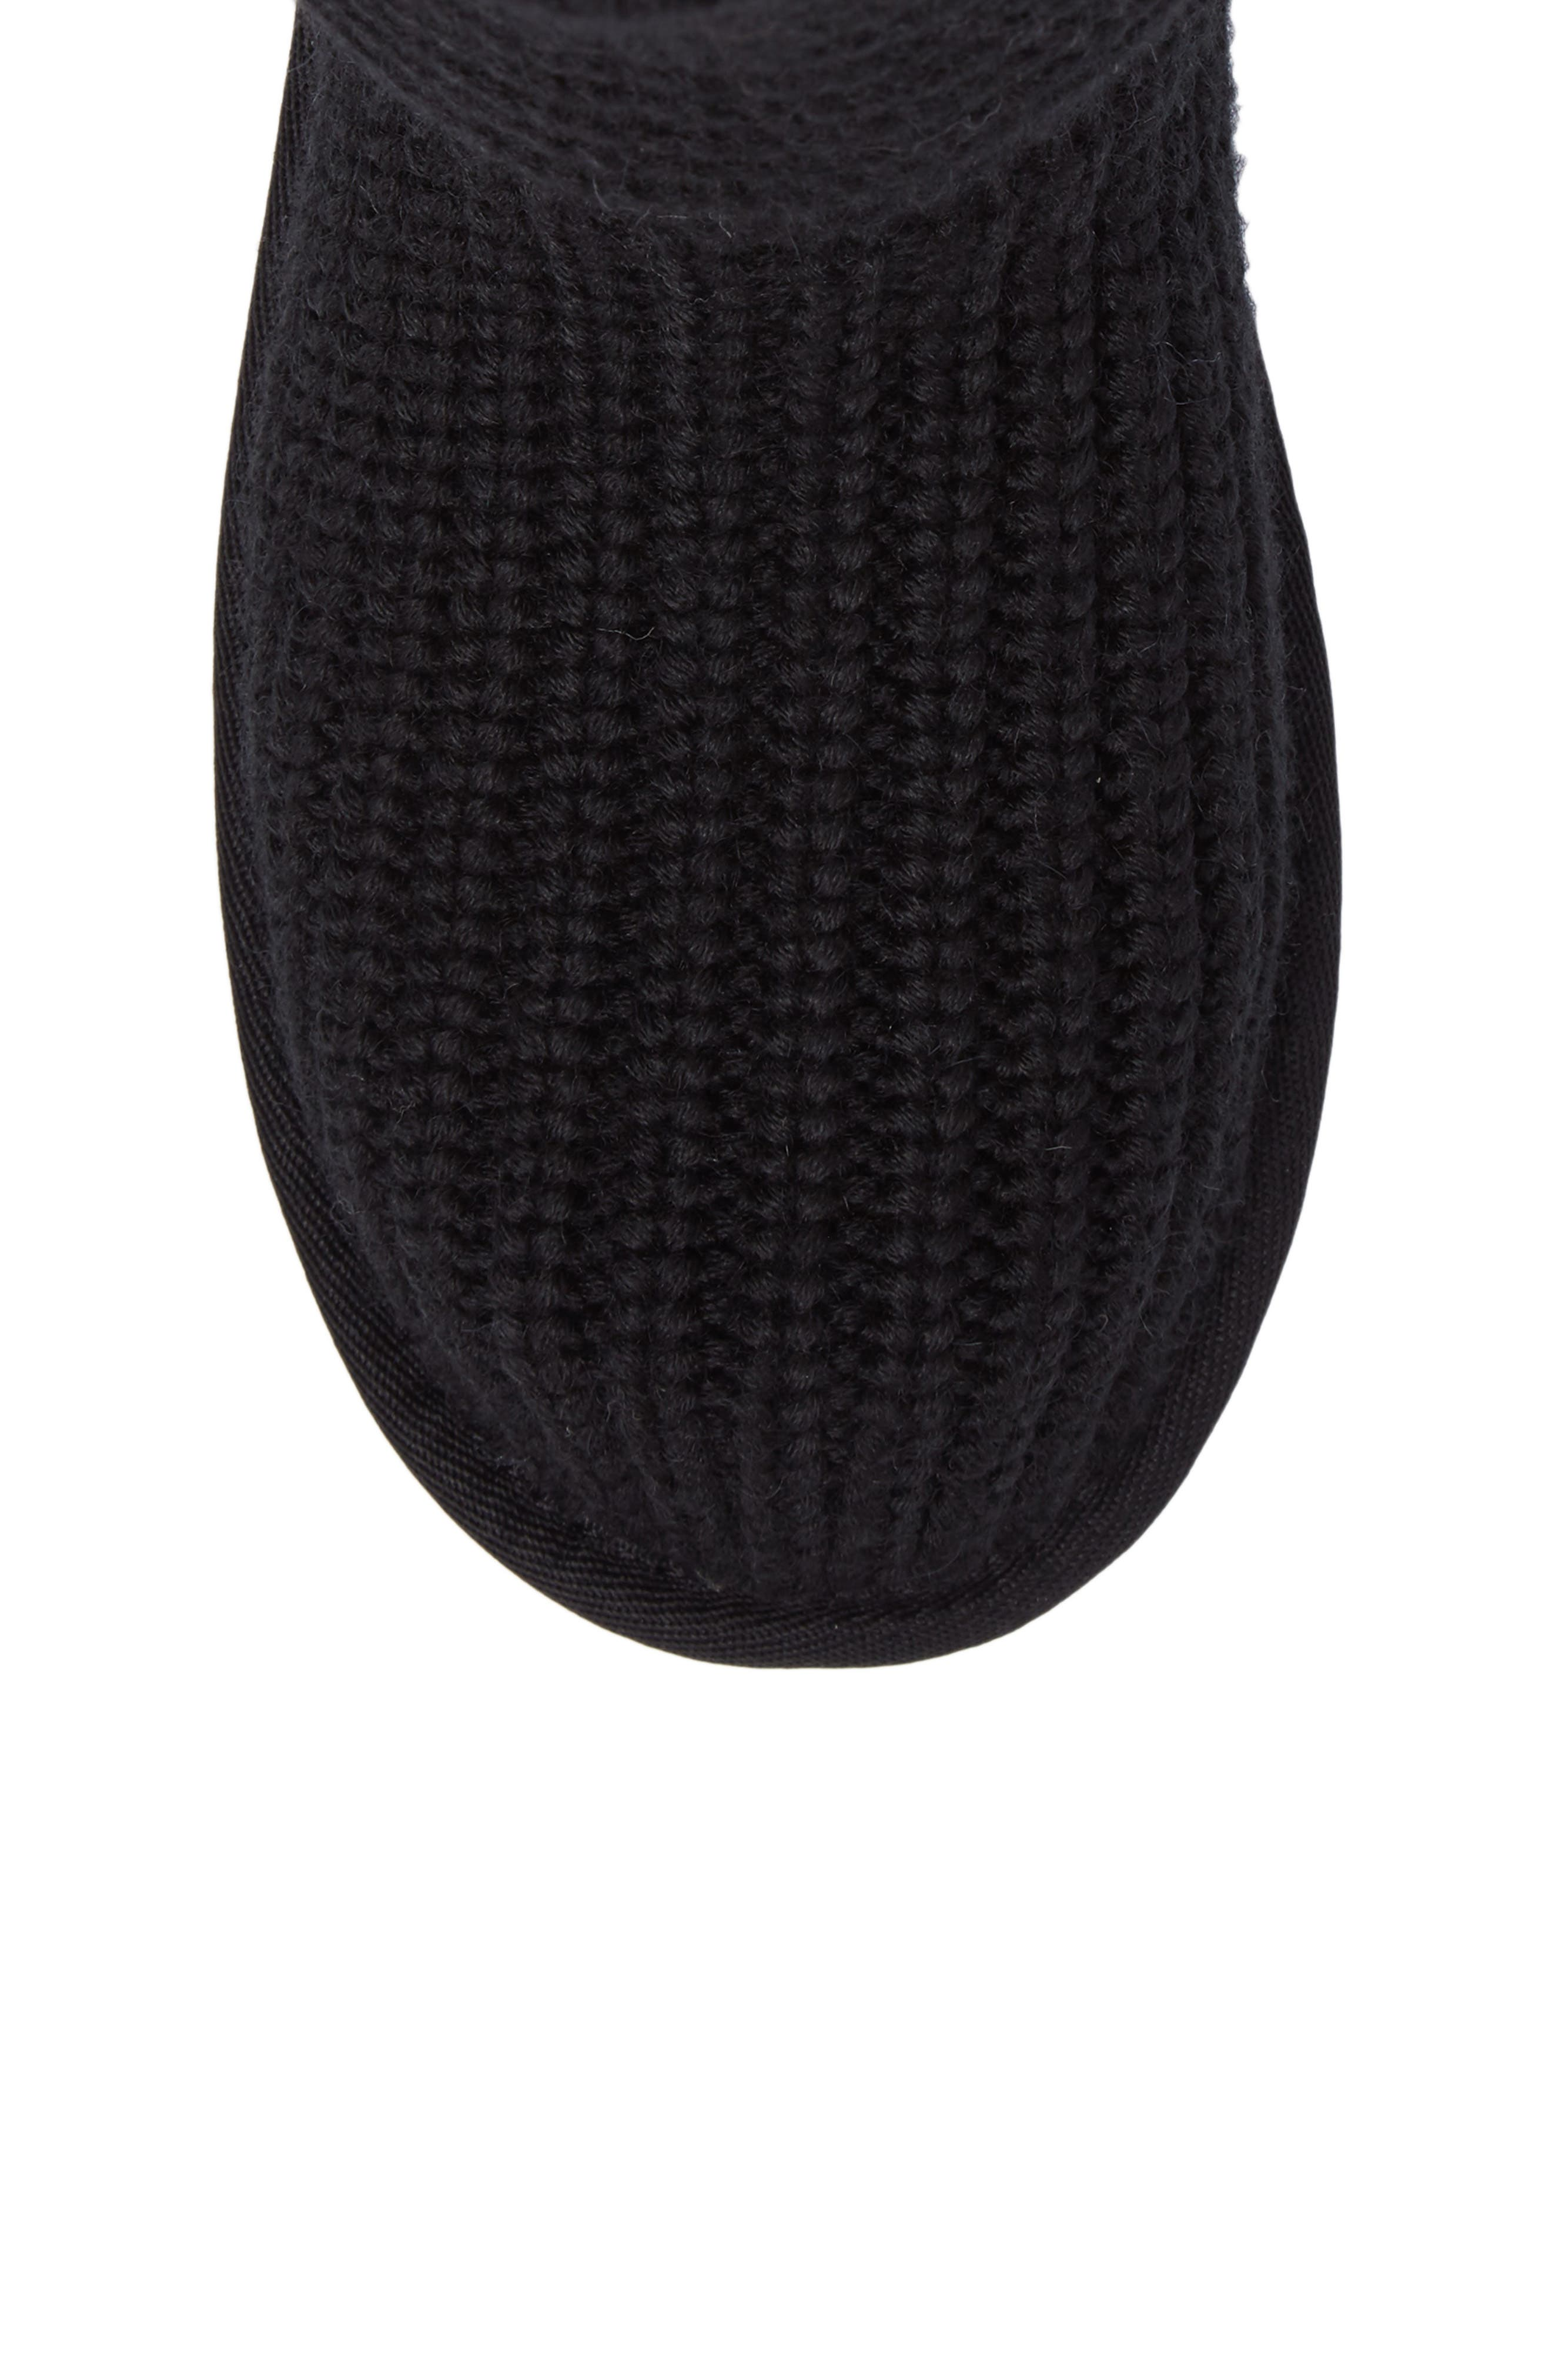 Cardy II Cableknit Bootie,                             Alternate thumbnail 5, color,                             Black